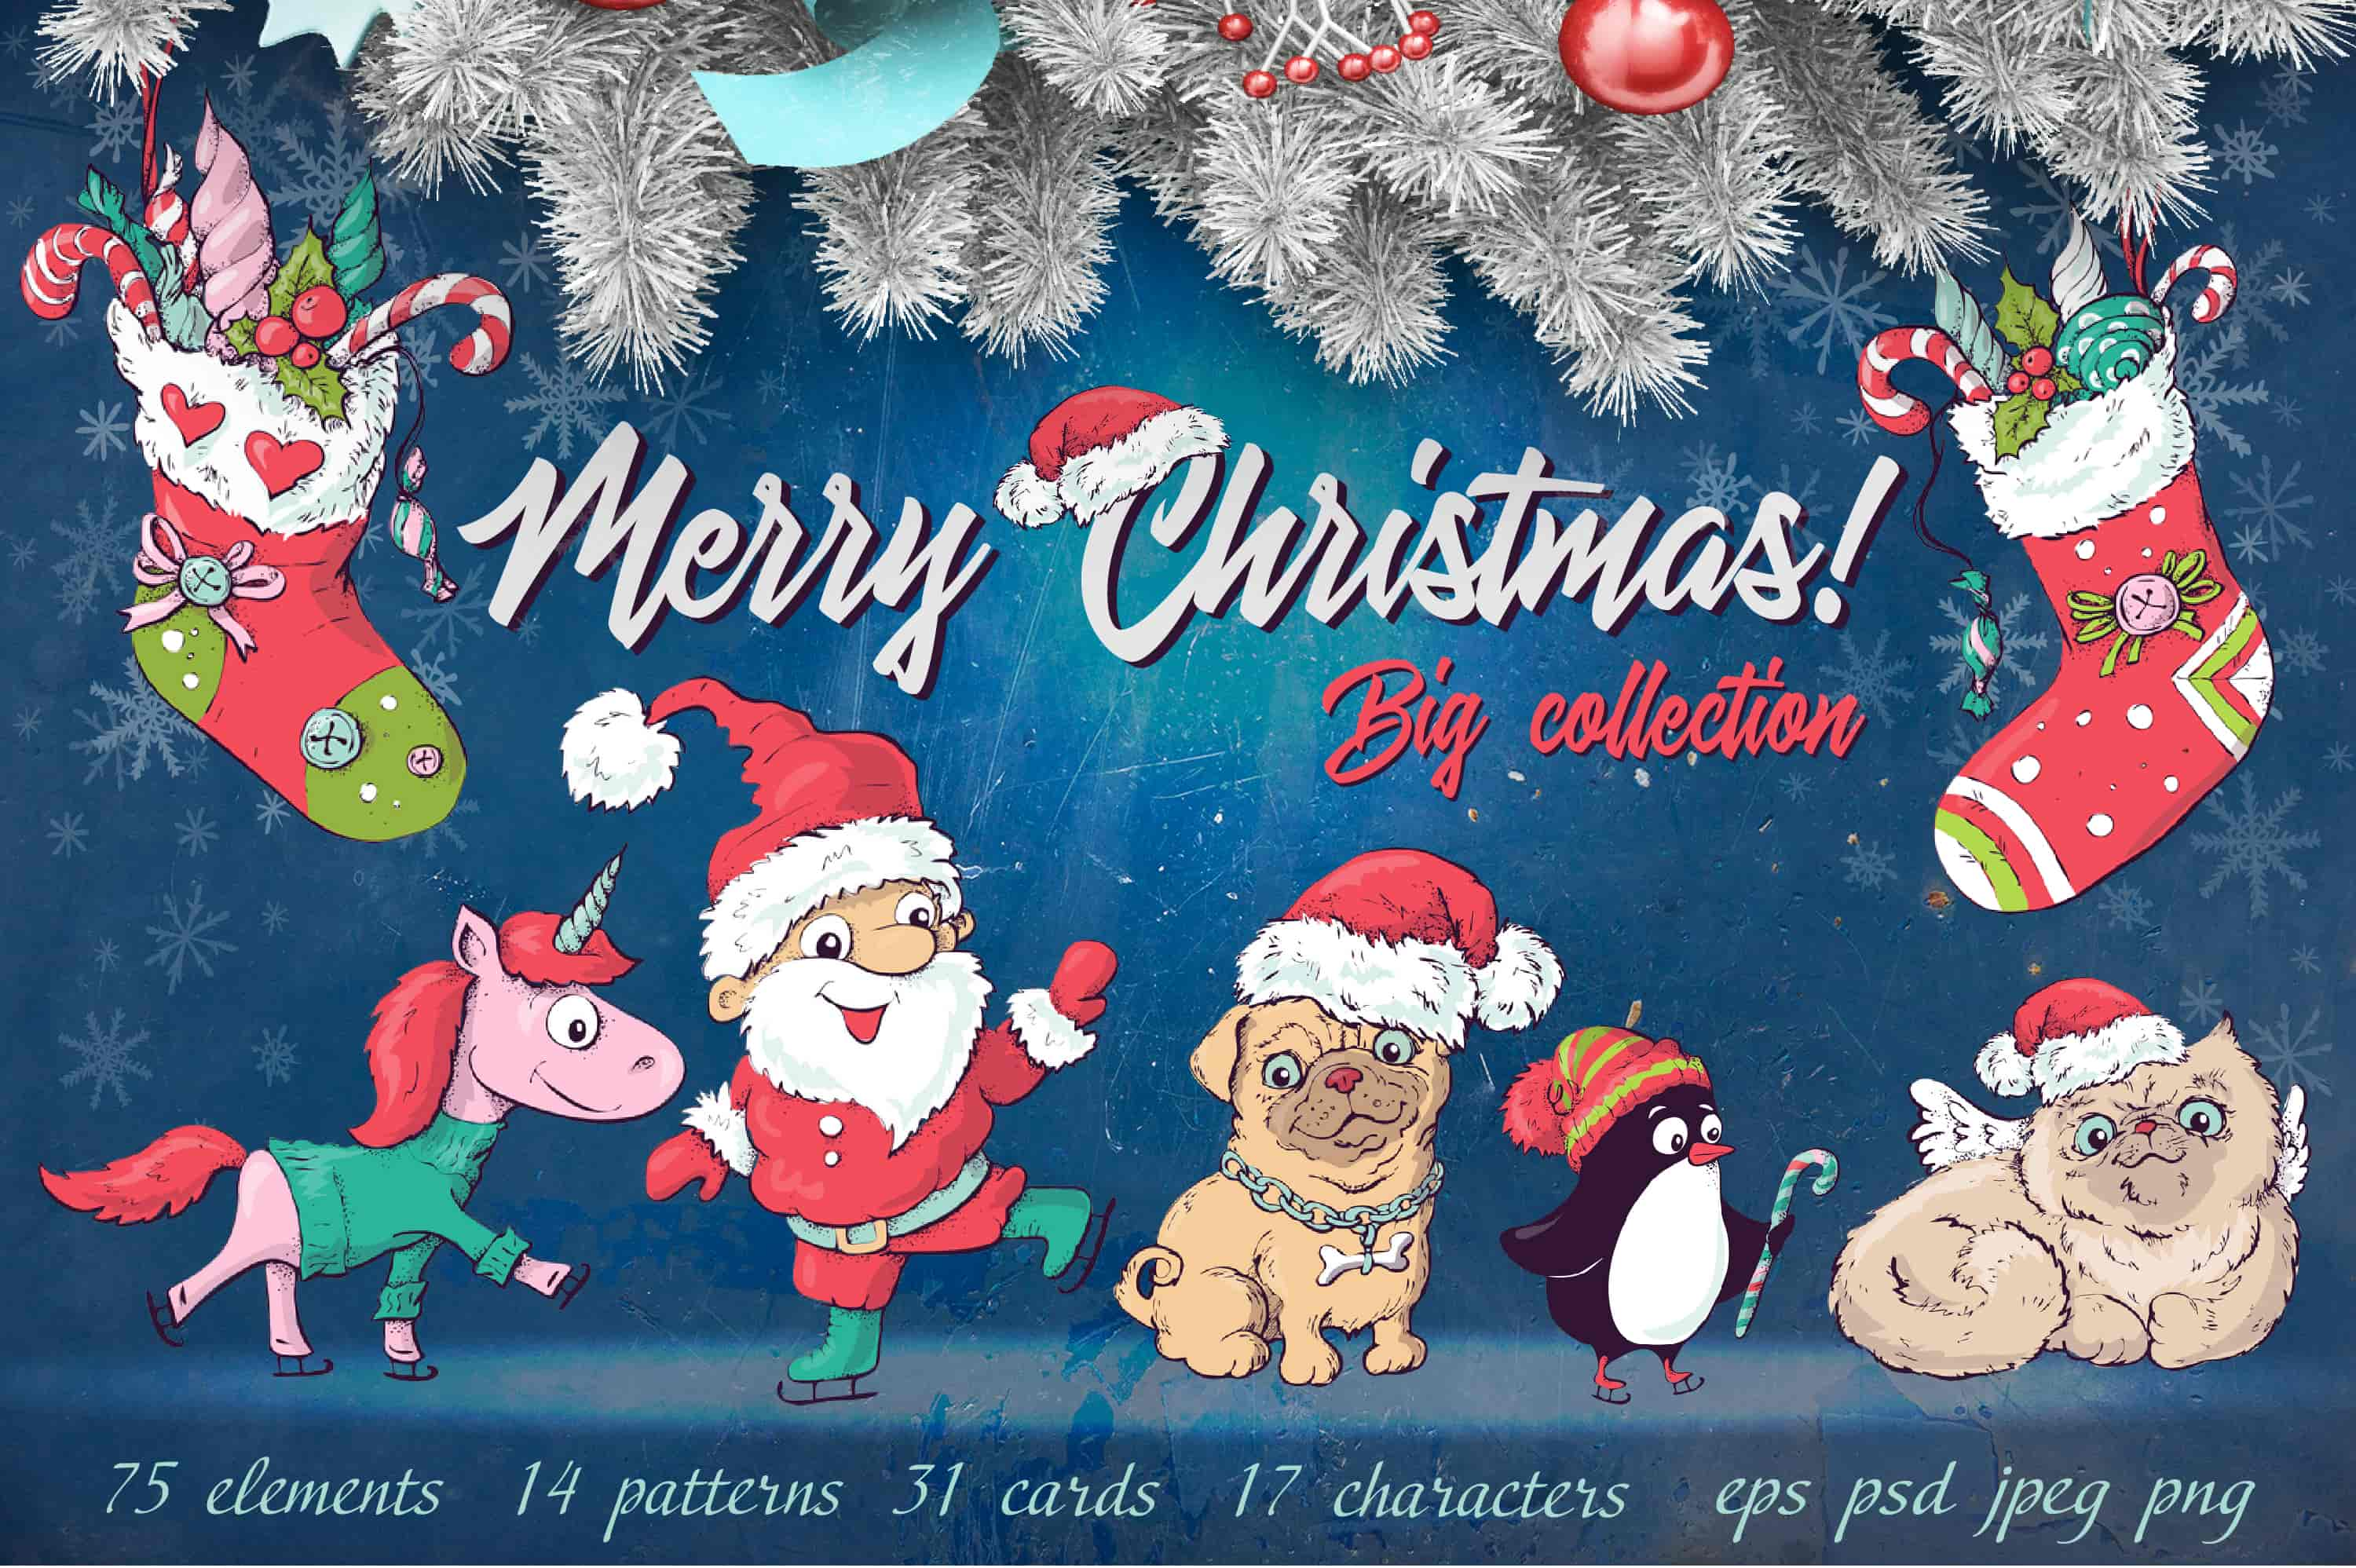 Merry Christmas Images: patterns, cards and items - 1 obl min